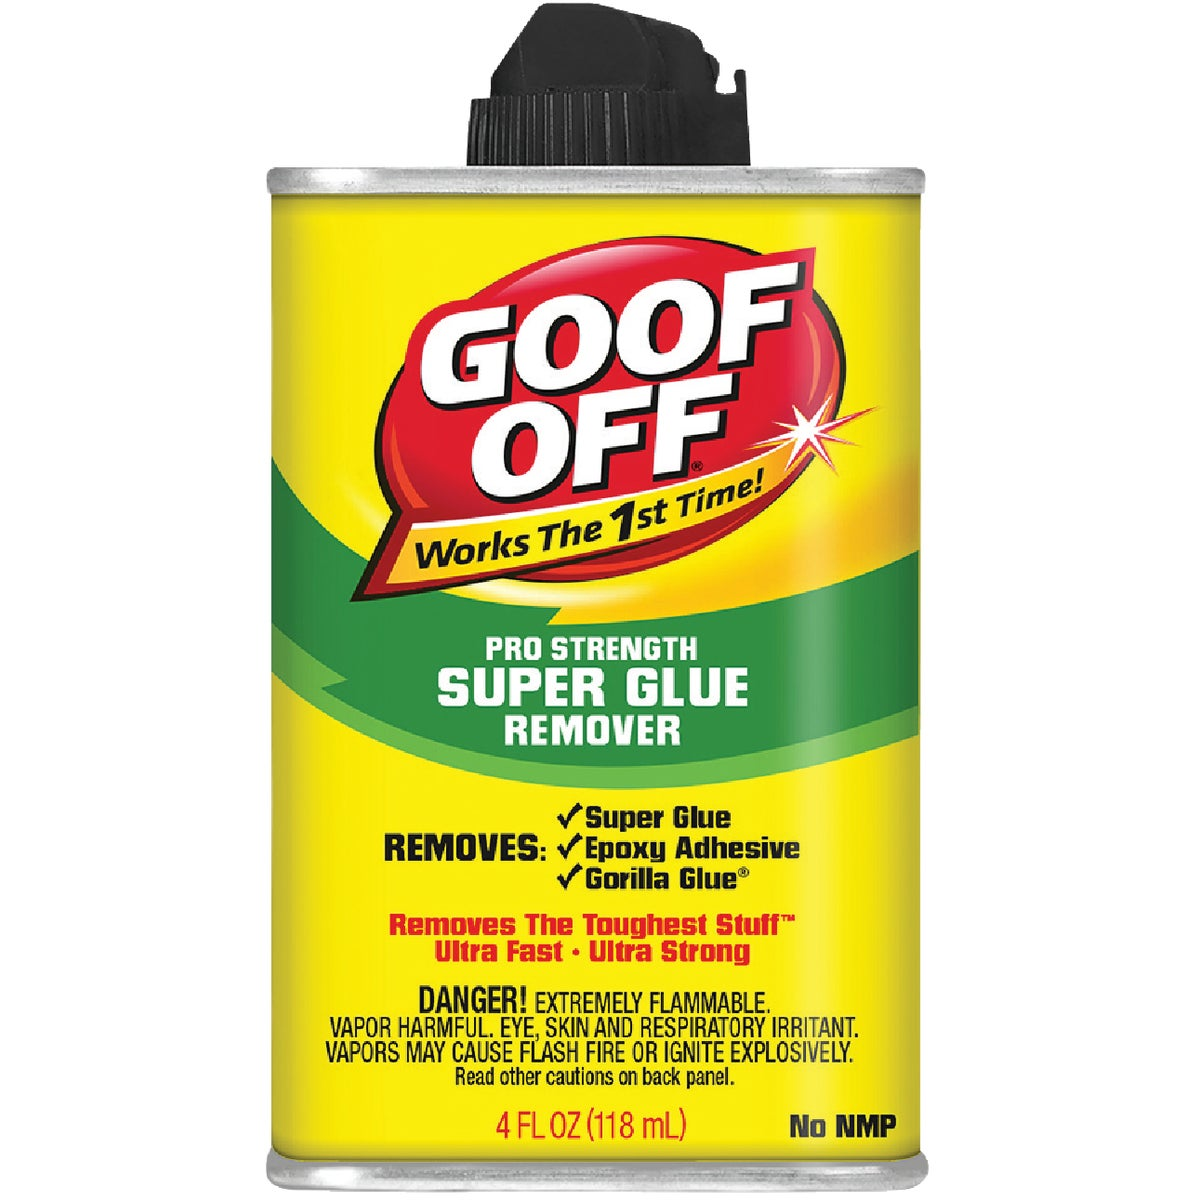 4OZ SUPER GLUE REMOVER - FG677 by Wm Barr Company